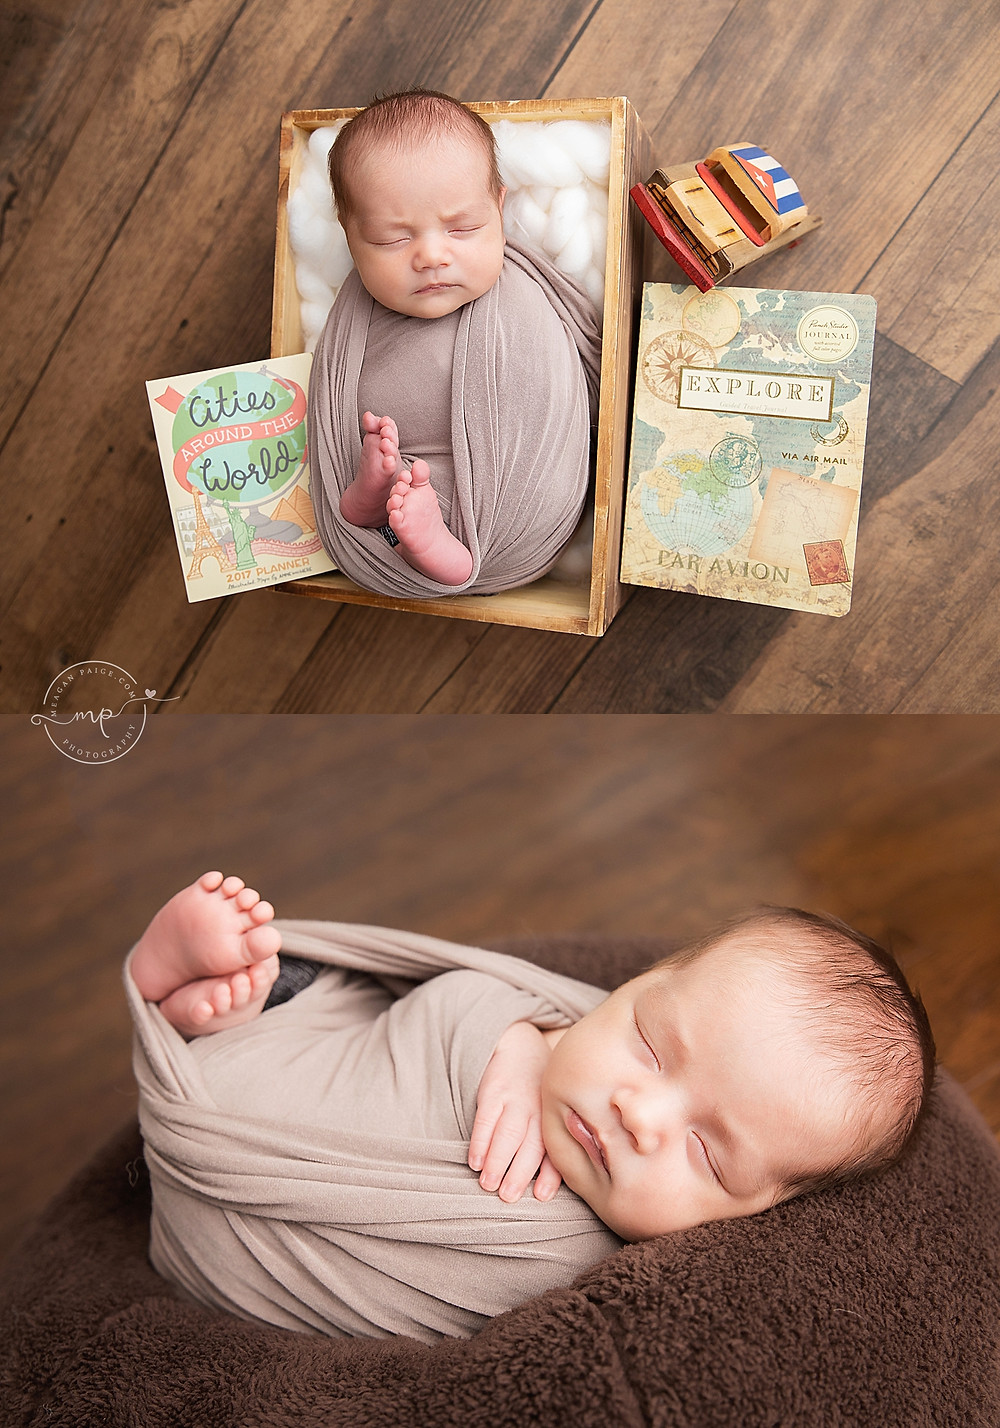 Baby Boy Newborn Portrait Session - Meagan Paige Photography - Calgary,AB